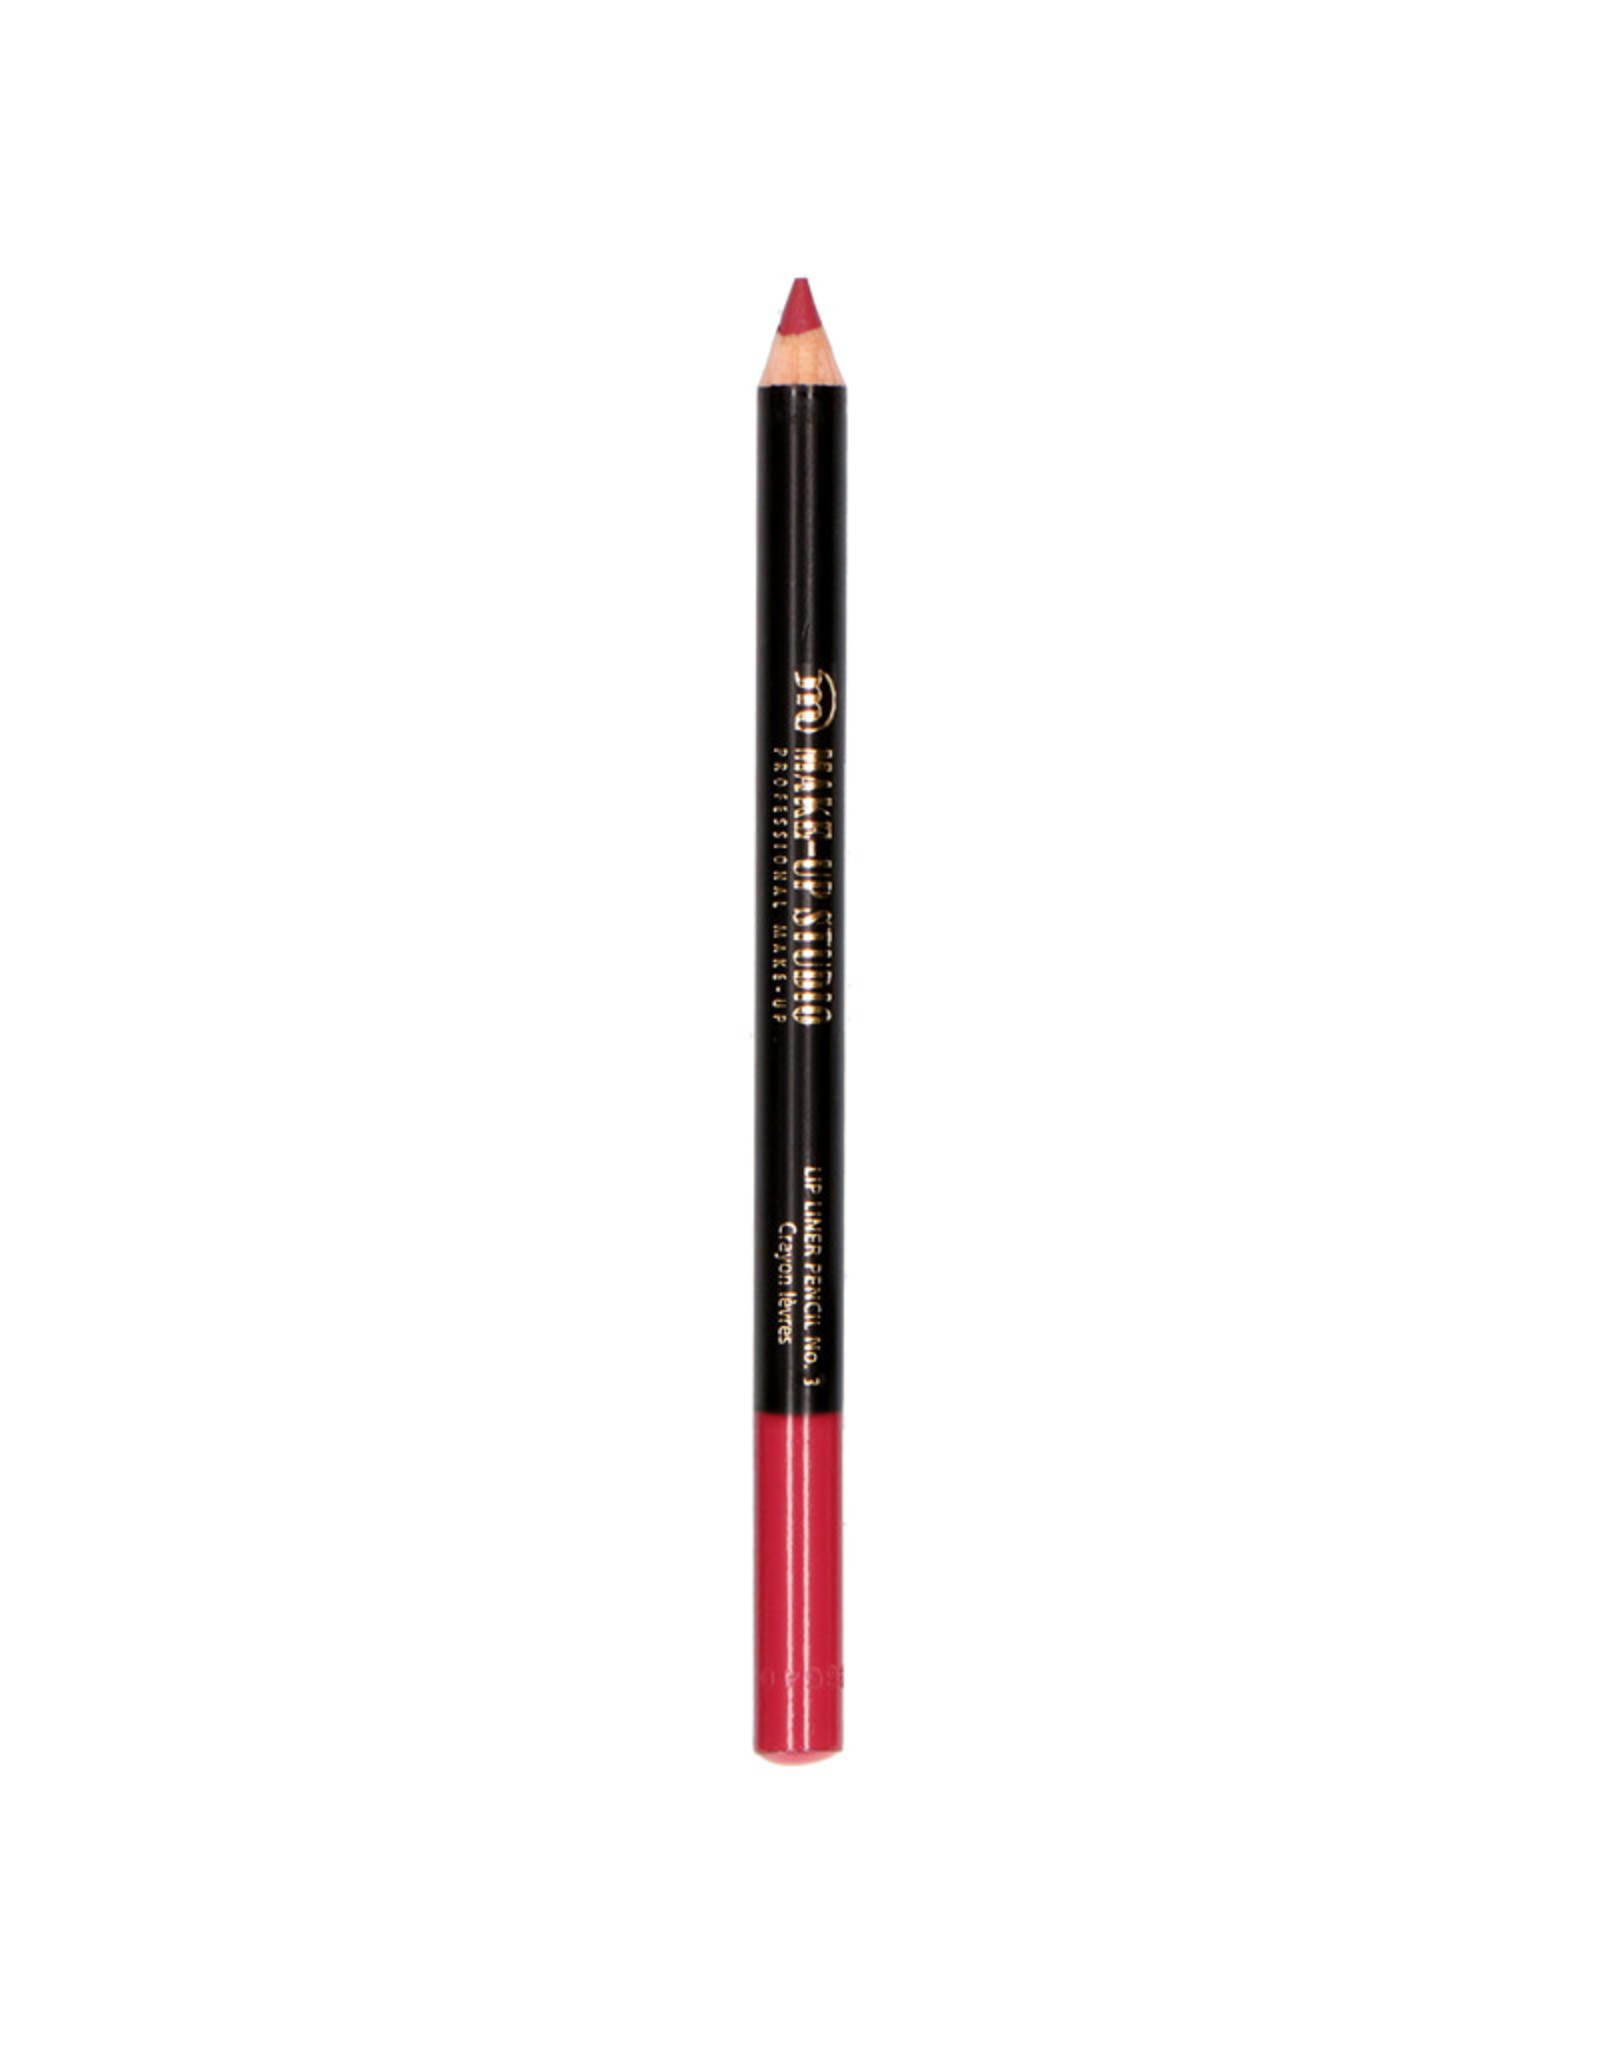 MAKE-UP STUDIO LIP LINER PENCIL 3